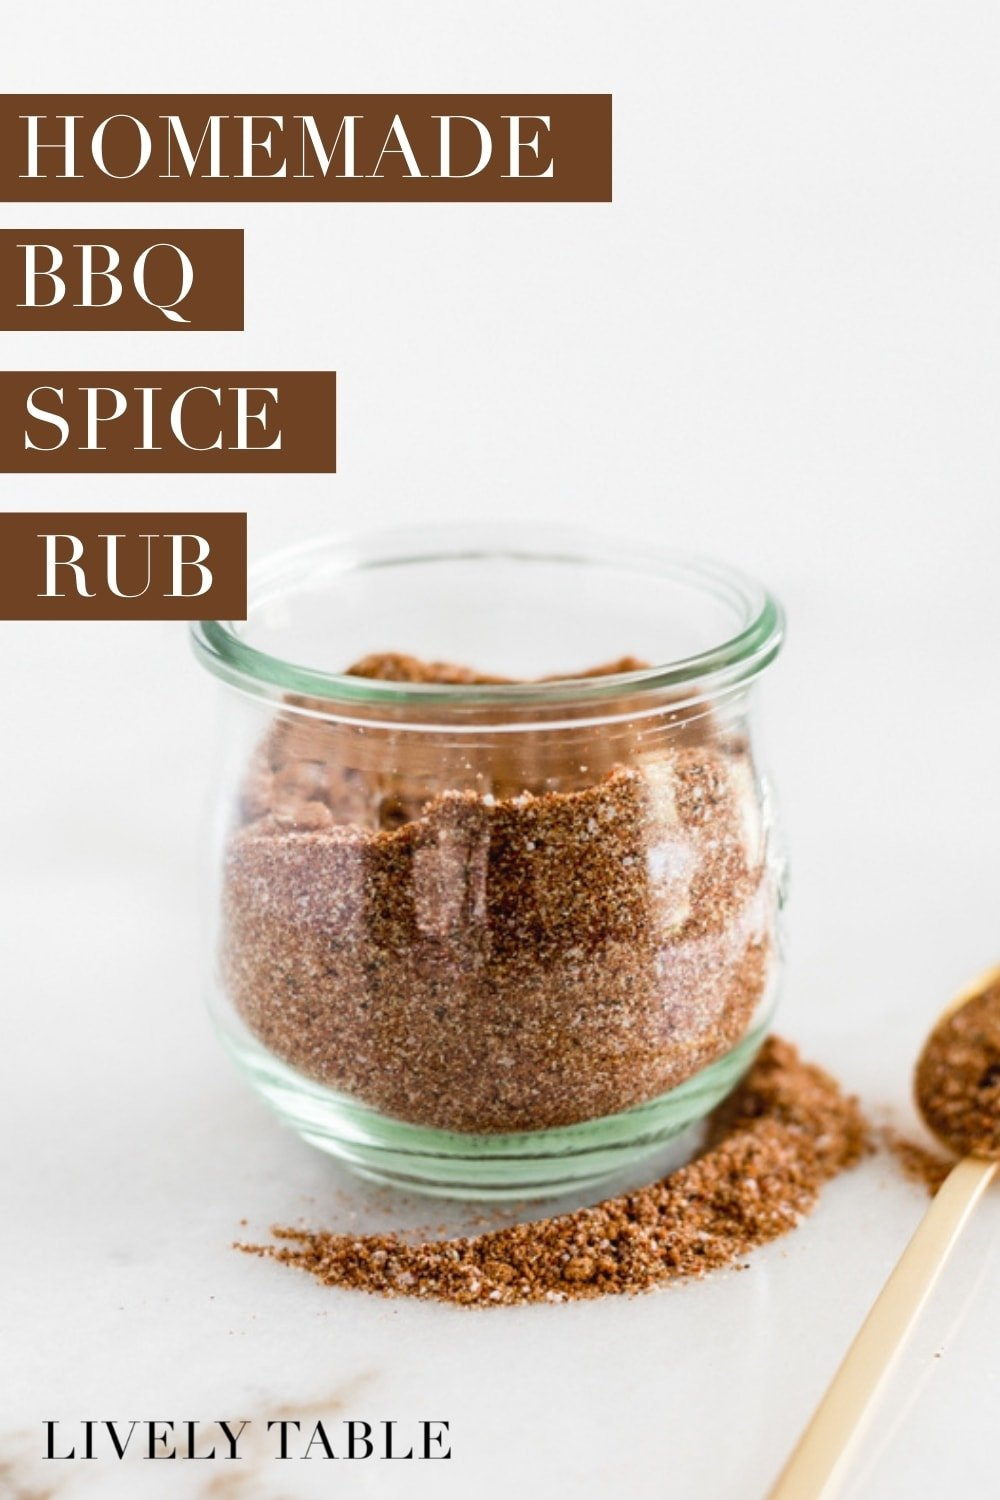 A simple and delicious, sweet and smoky, homemade BBQ spice rub that can be used on anything from grilled chicken to smoked brisket or ribs! Add it to a grilling gift basket for the perfect Father's Day gift. #BBQ #spicerub #grilling #summer #recipes #easy